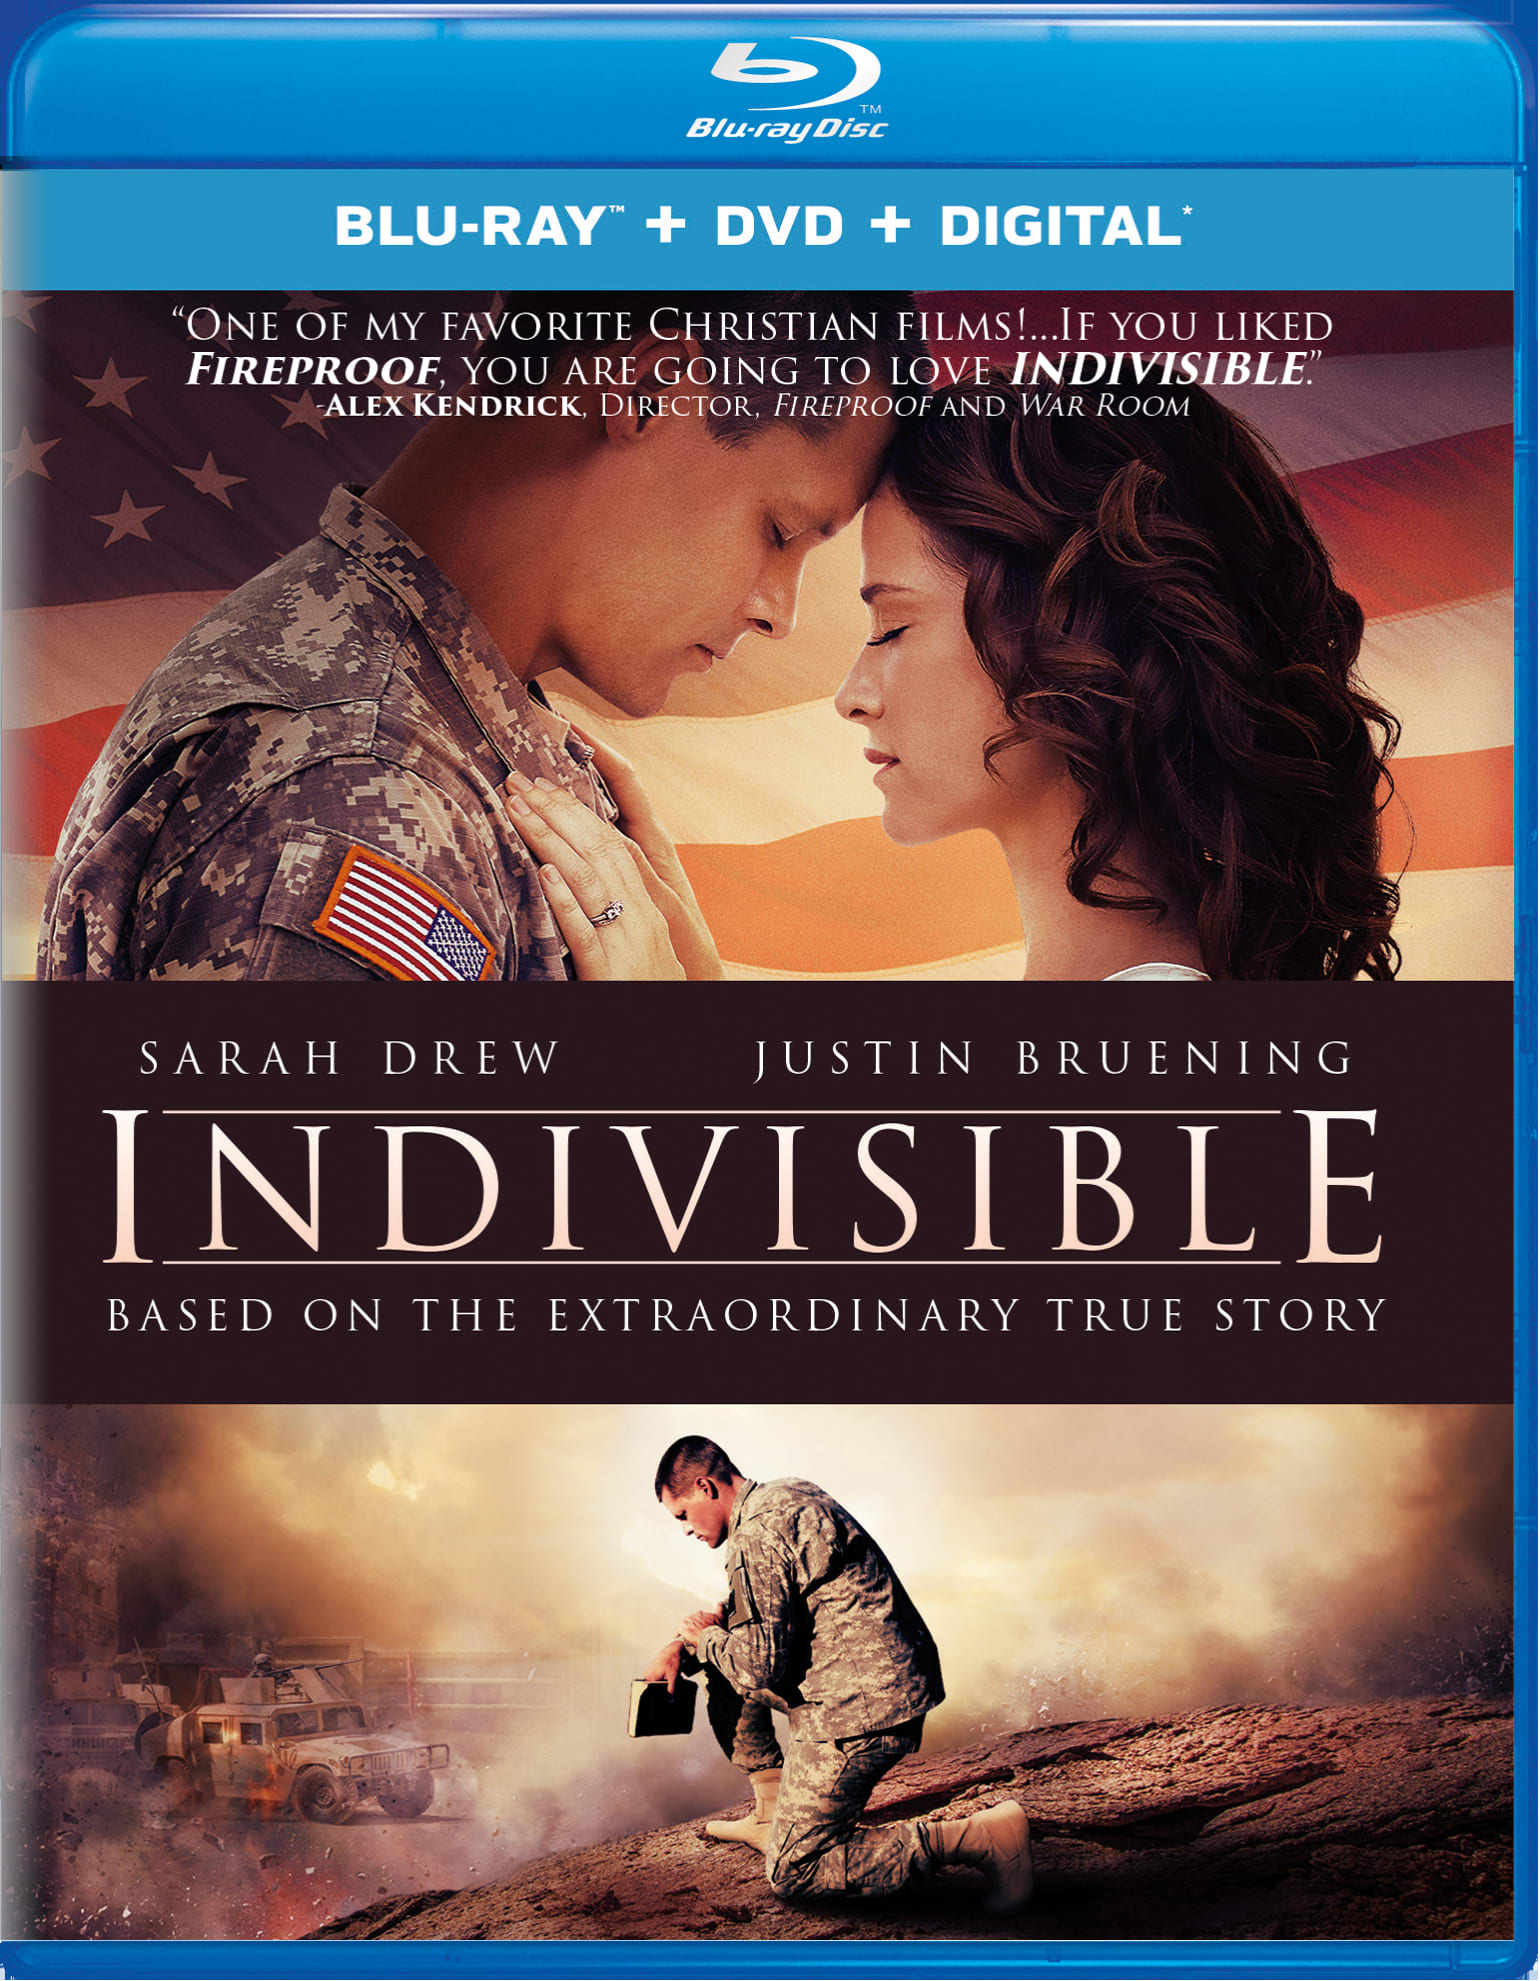 Indivisible (DVD + Digital) [Blu-ray]